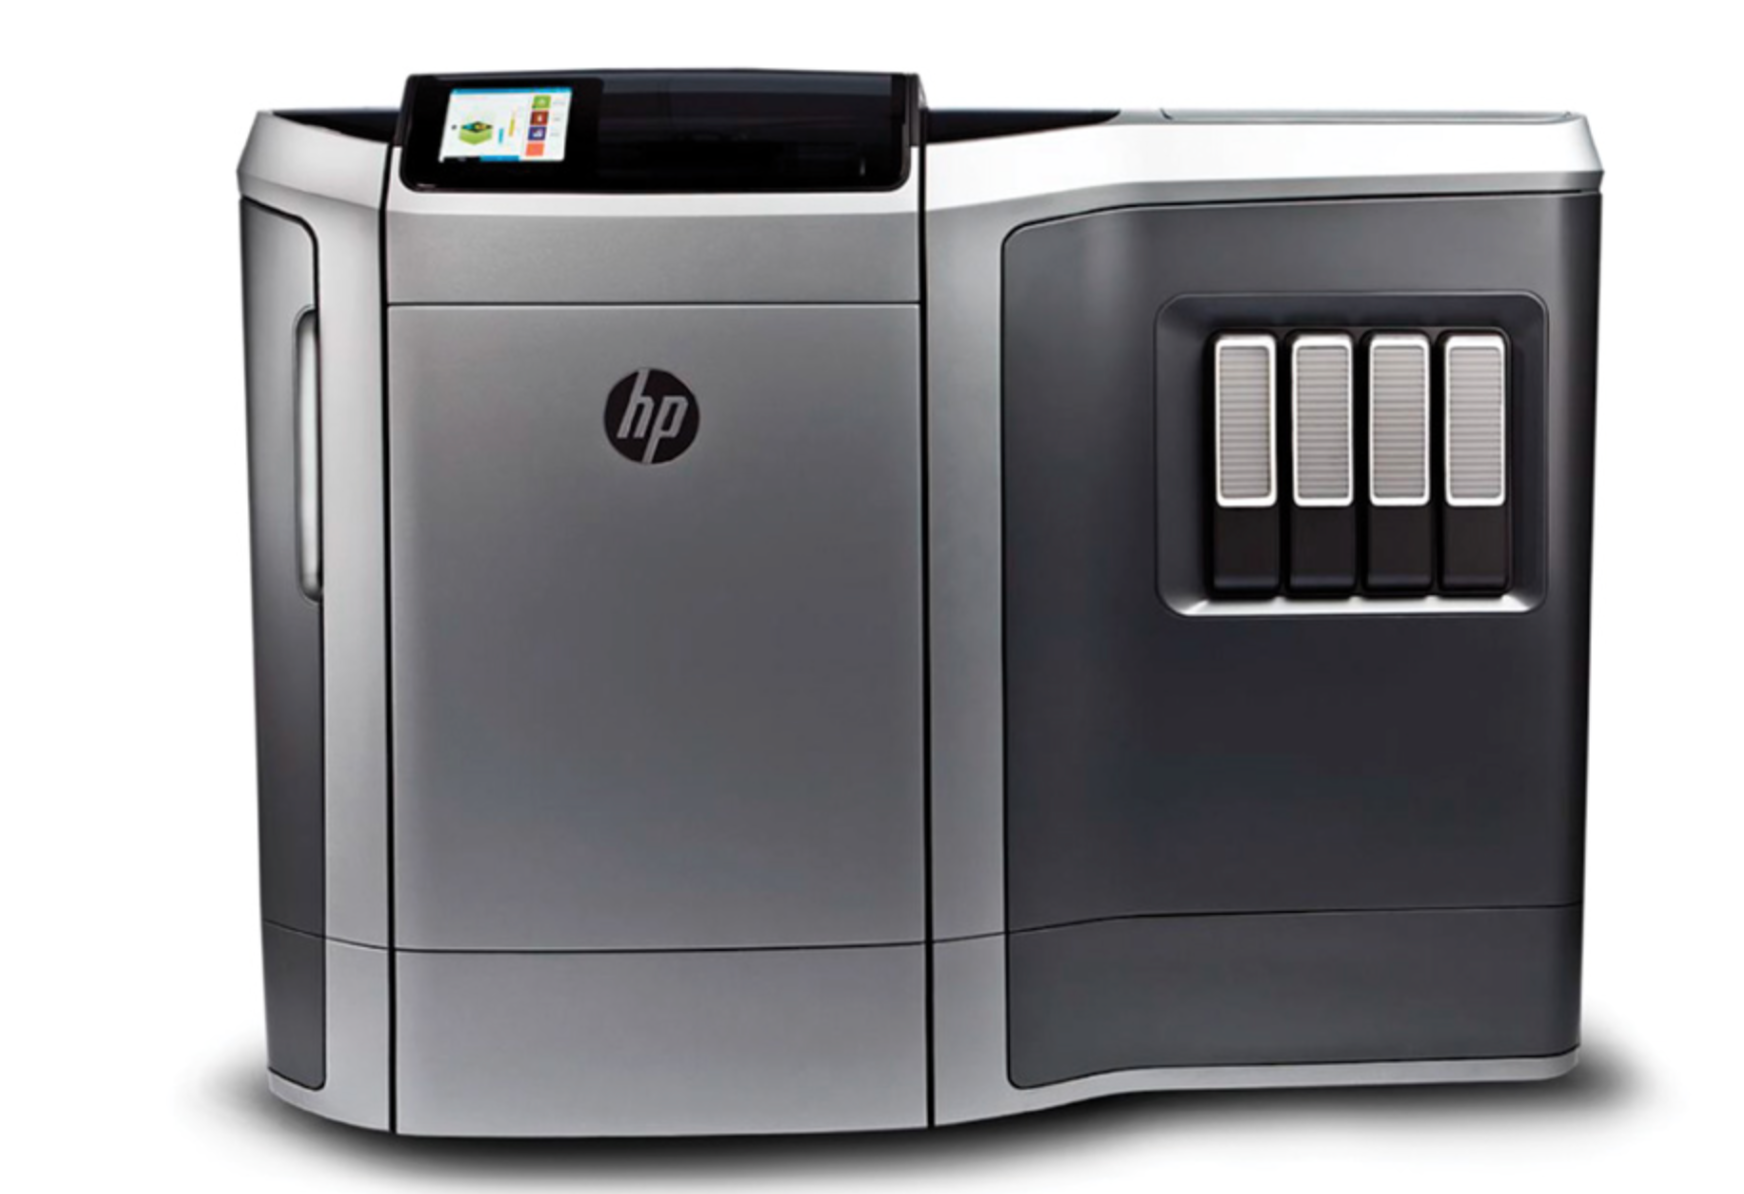 HP's 3D printers pave the way for an interesting future